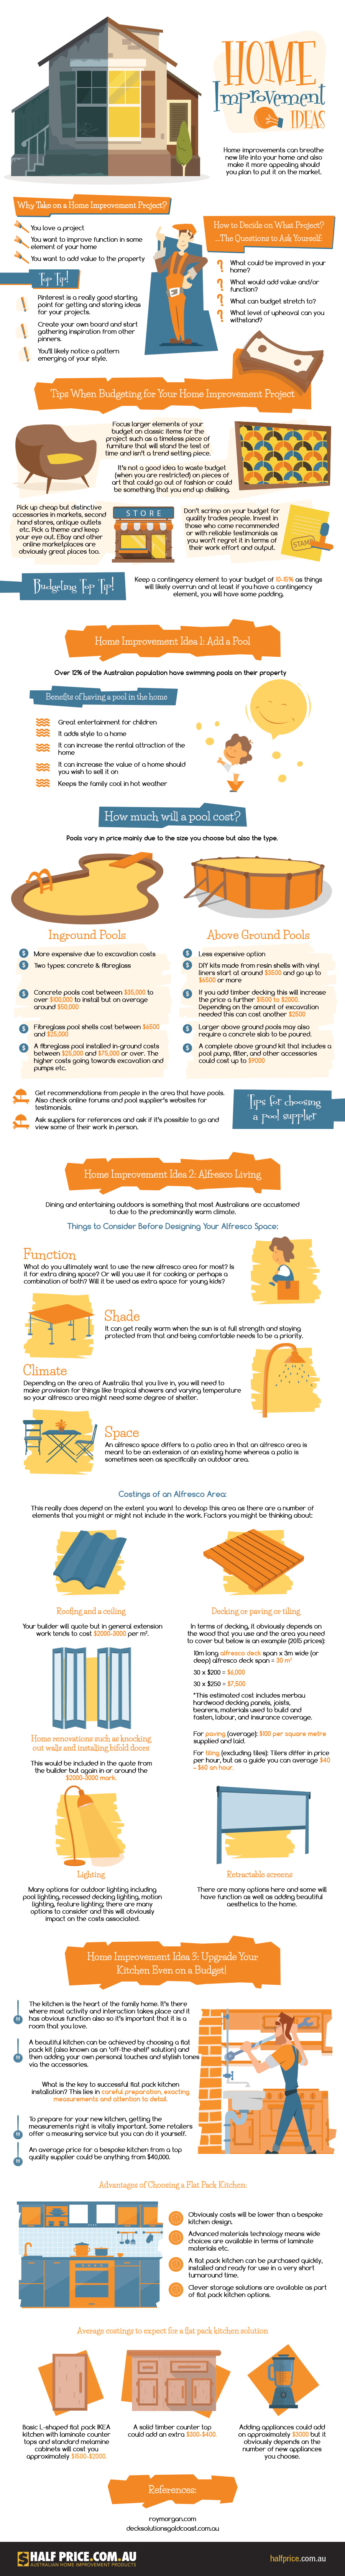 Enhance Your Personal Space: Home Improvement Ideas - Infographic